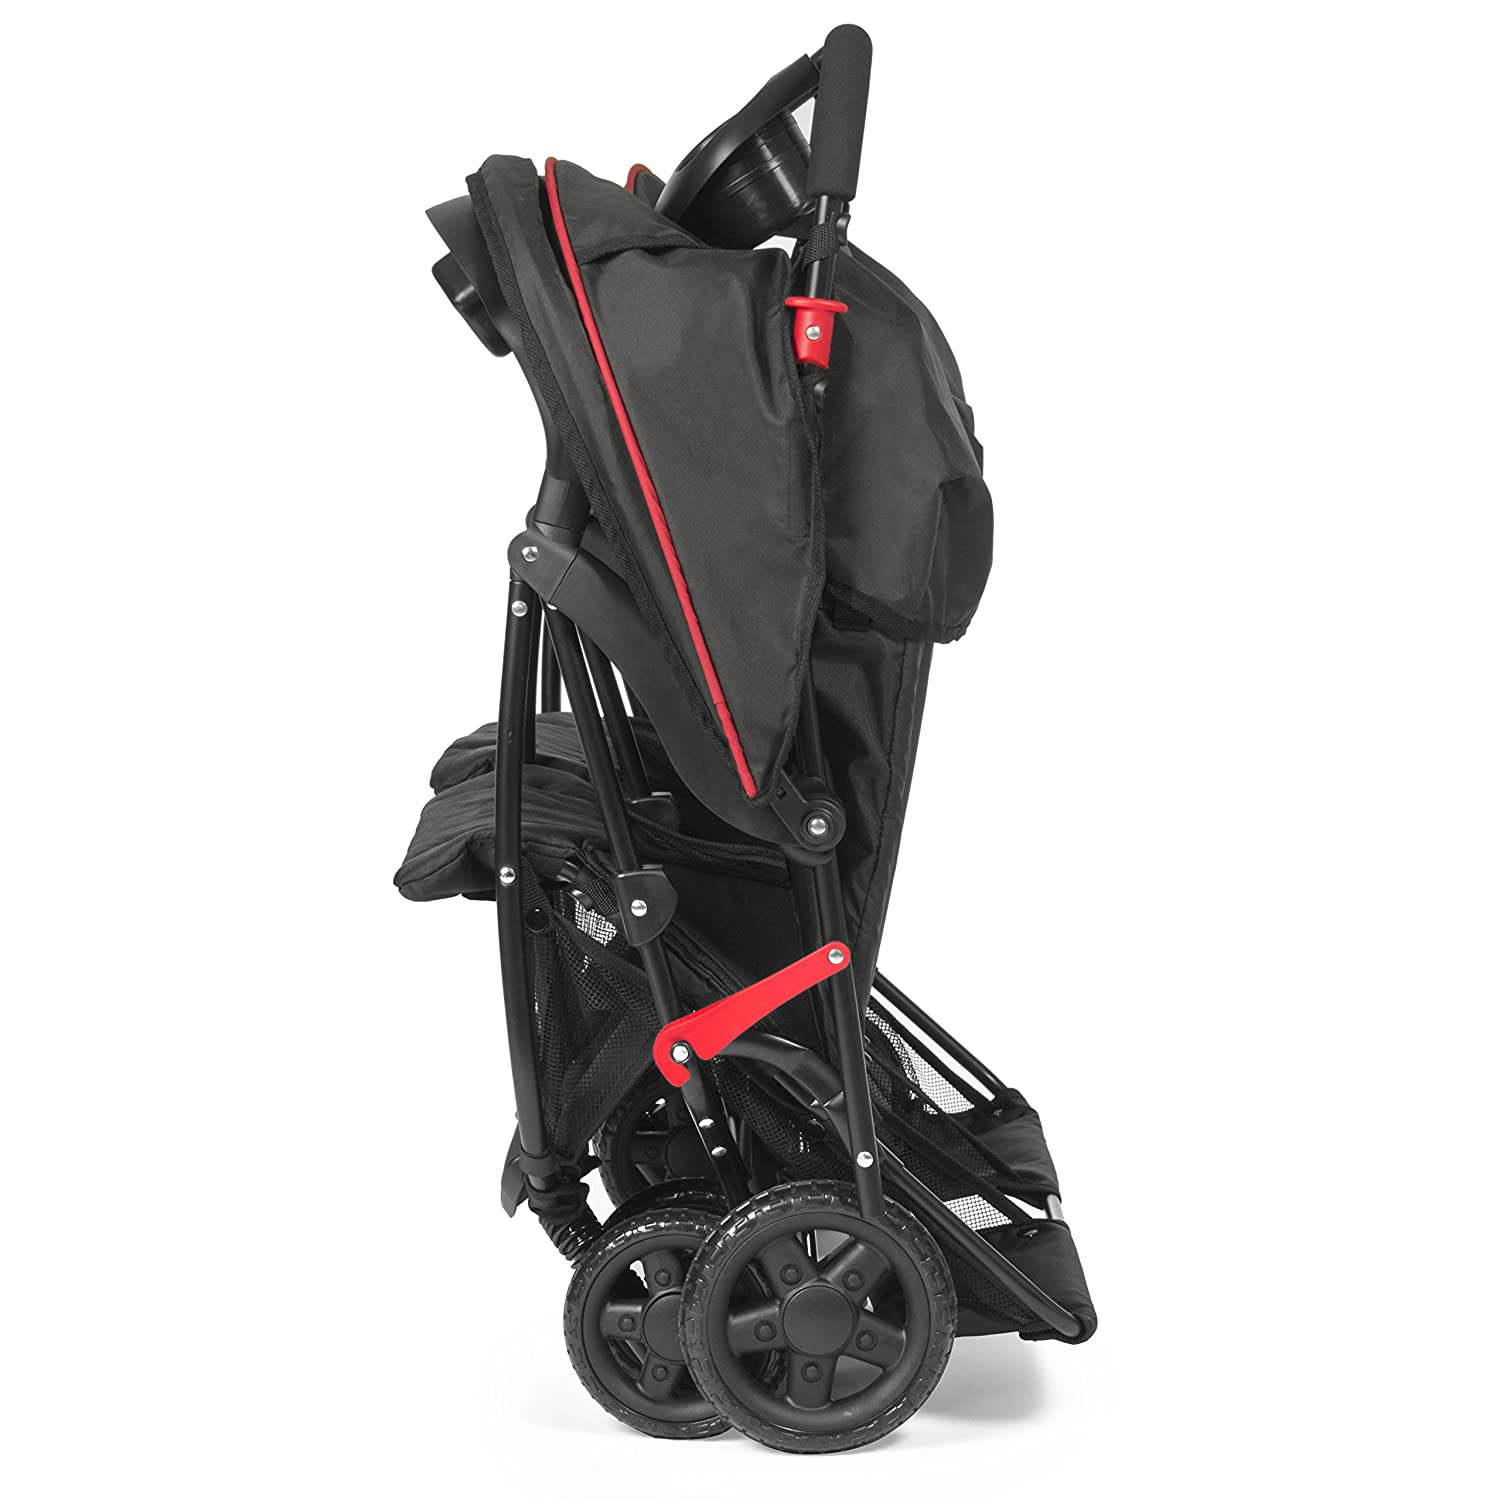 Kolcraft Cloud Plus Lightweight Double Stroller -5-Point Safety System, 3-Tier Extended Canopy for UV Protection, Independently Reclining Seats, Easy Fold, Storage Basket, Drink Holder Tray, Red Black